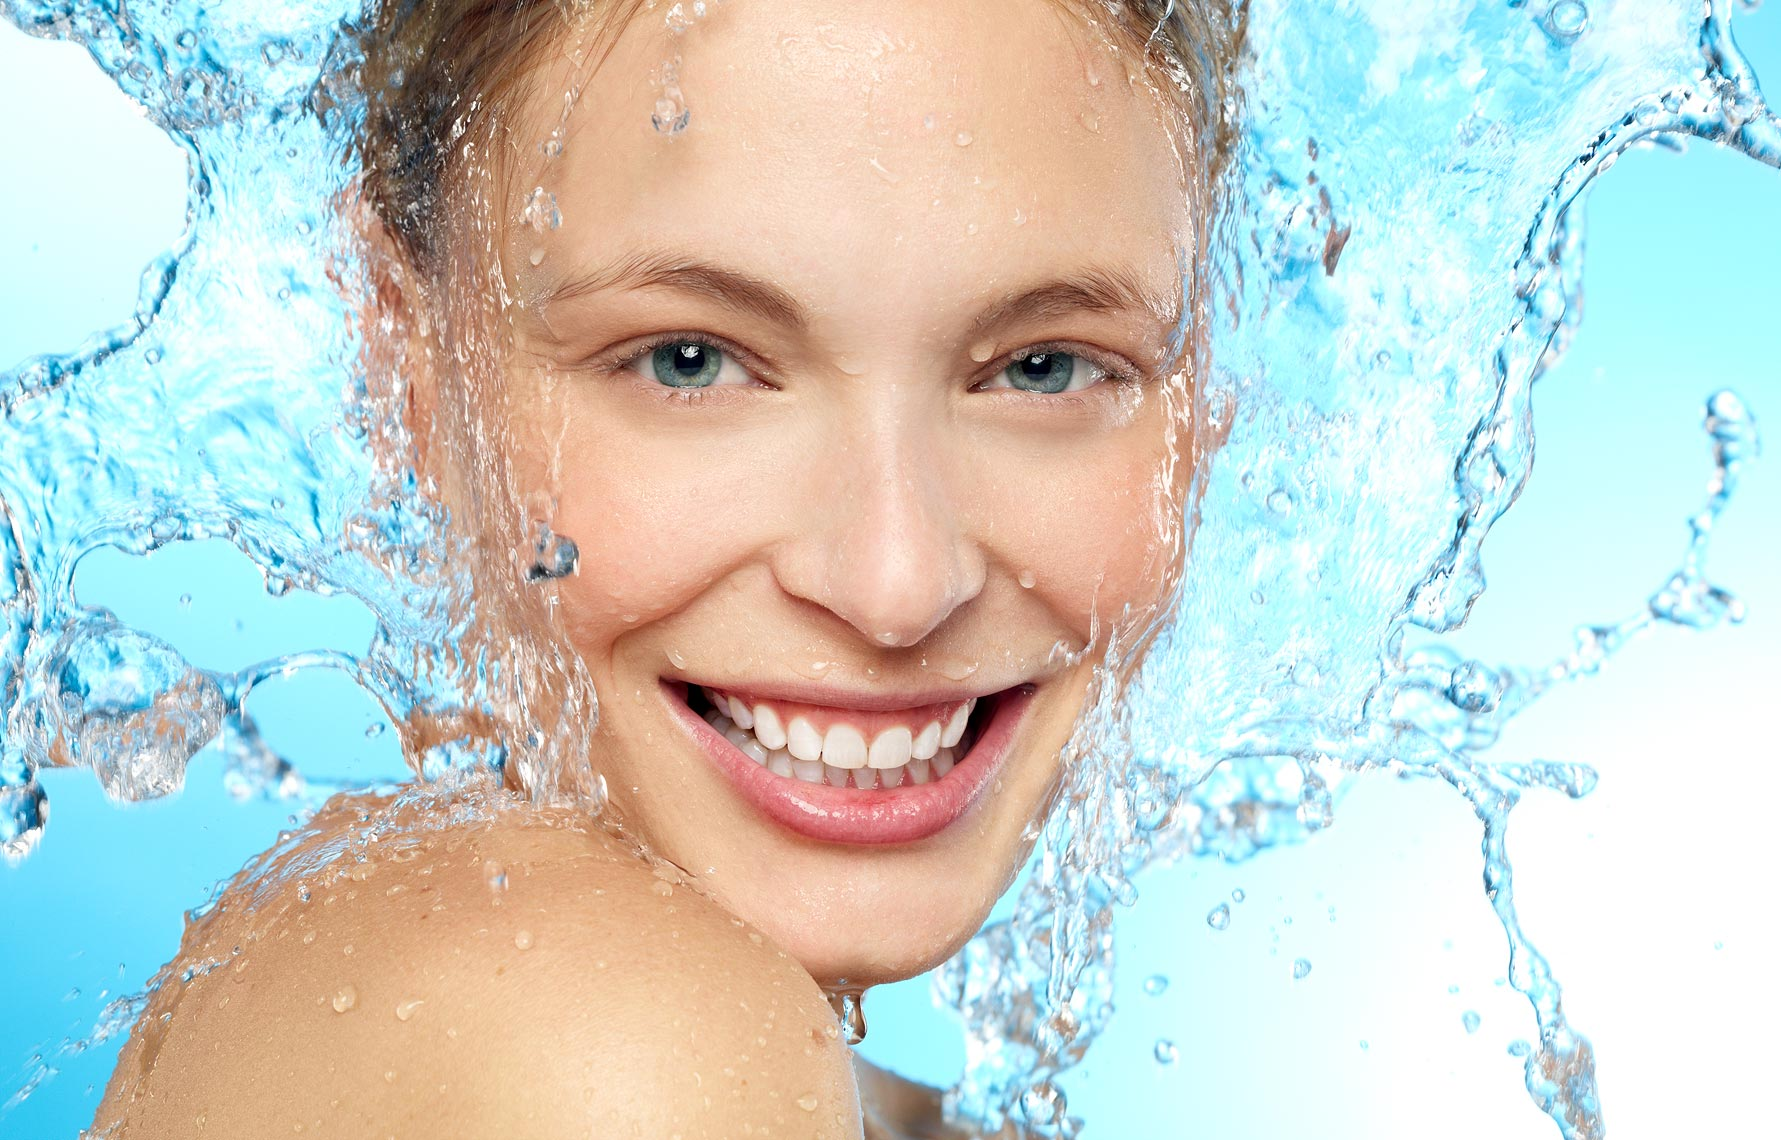 Jeff-Stephens-Water_Splash_Beauty_Melissa_087.jpg